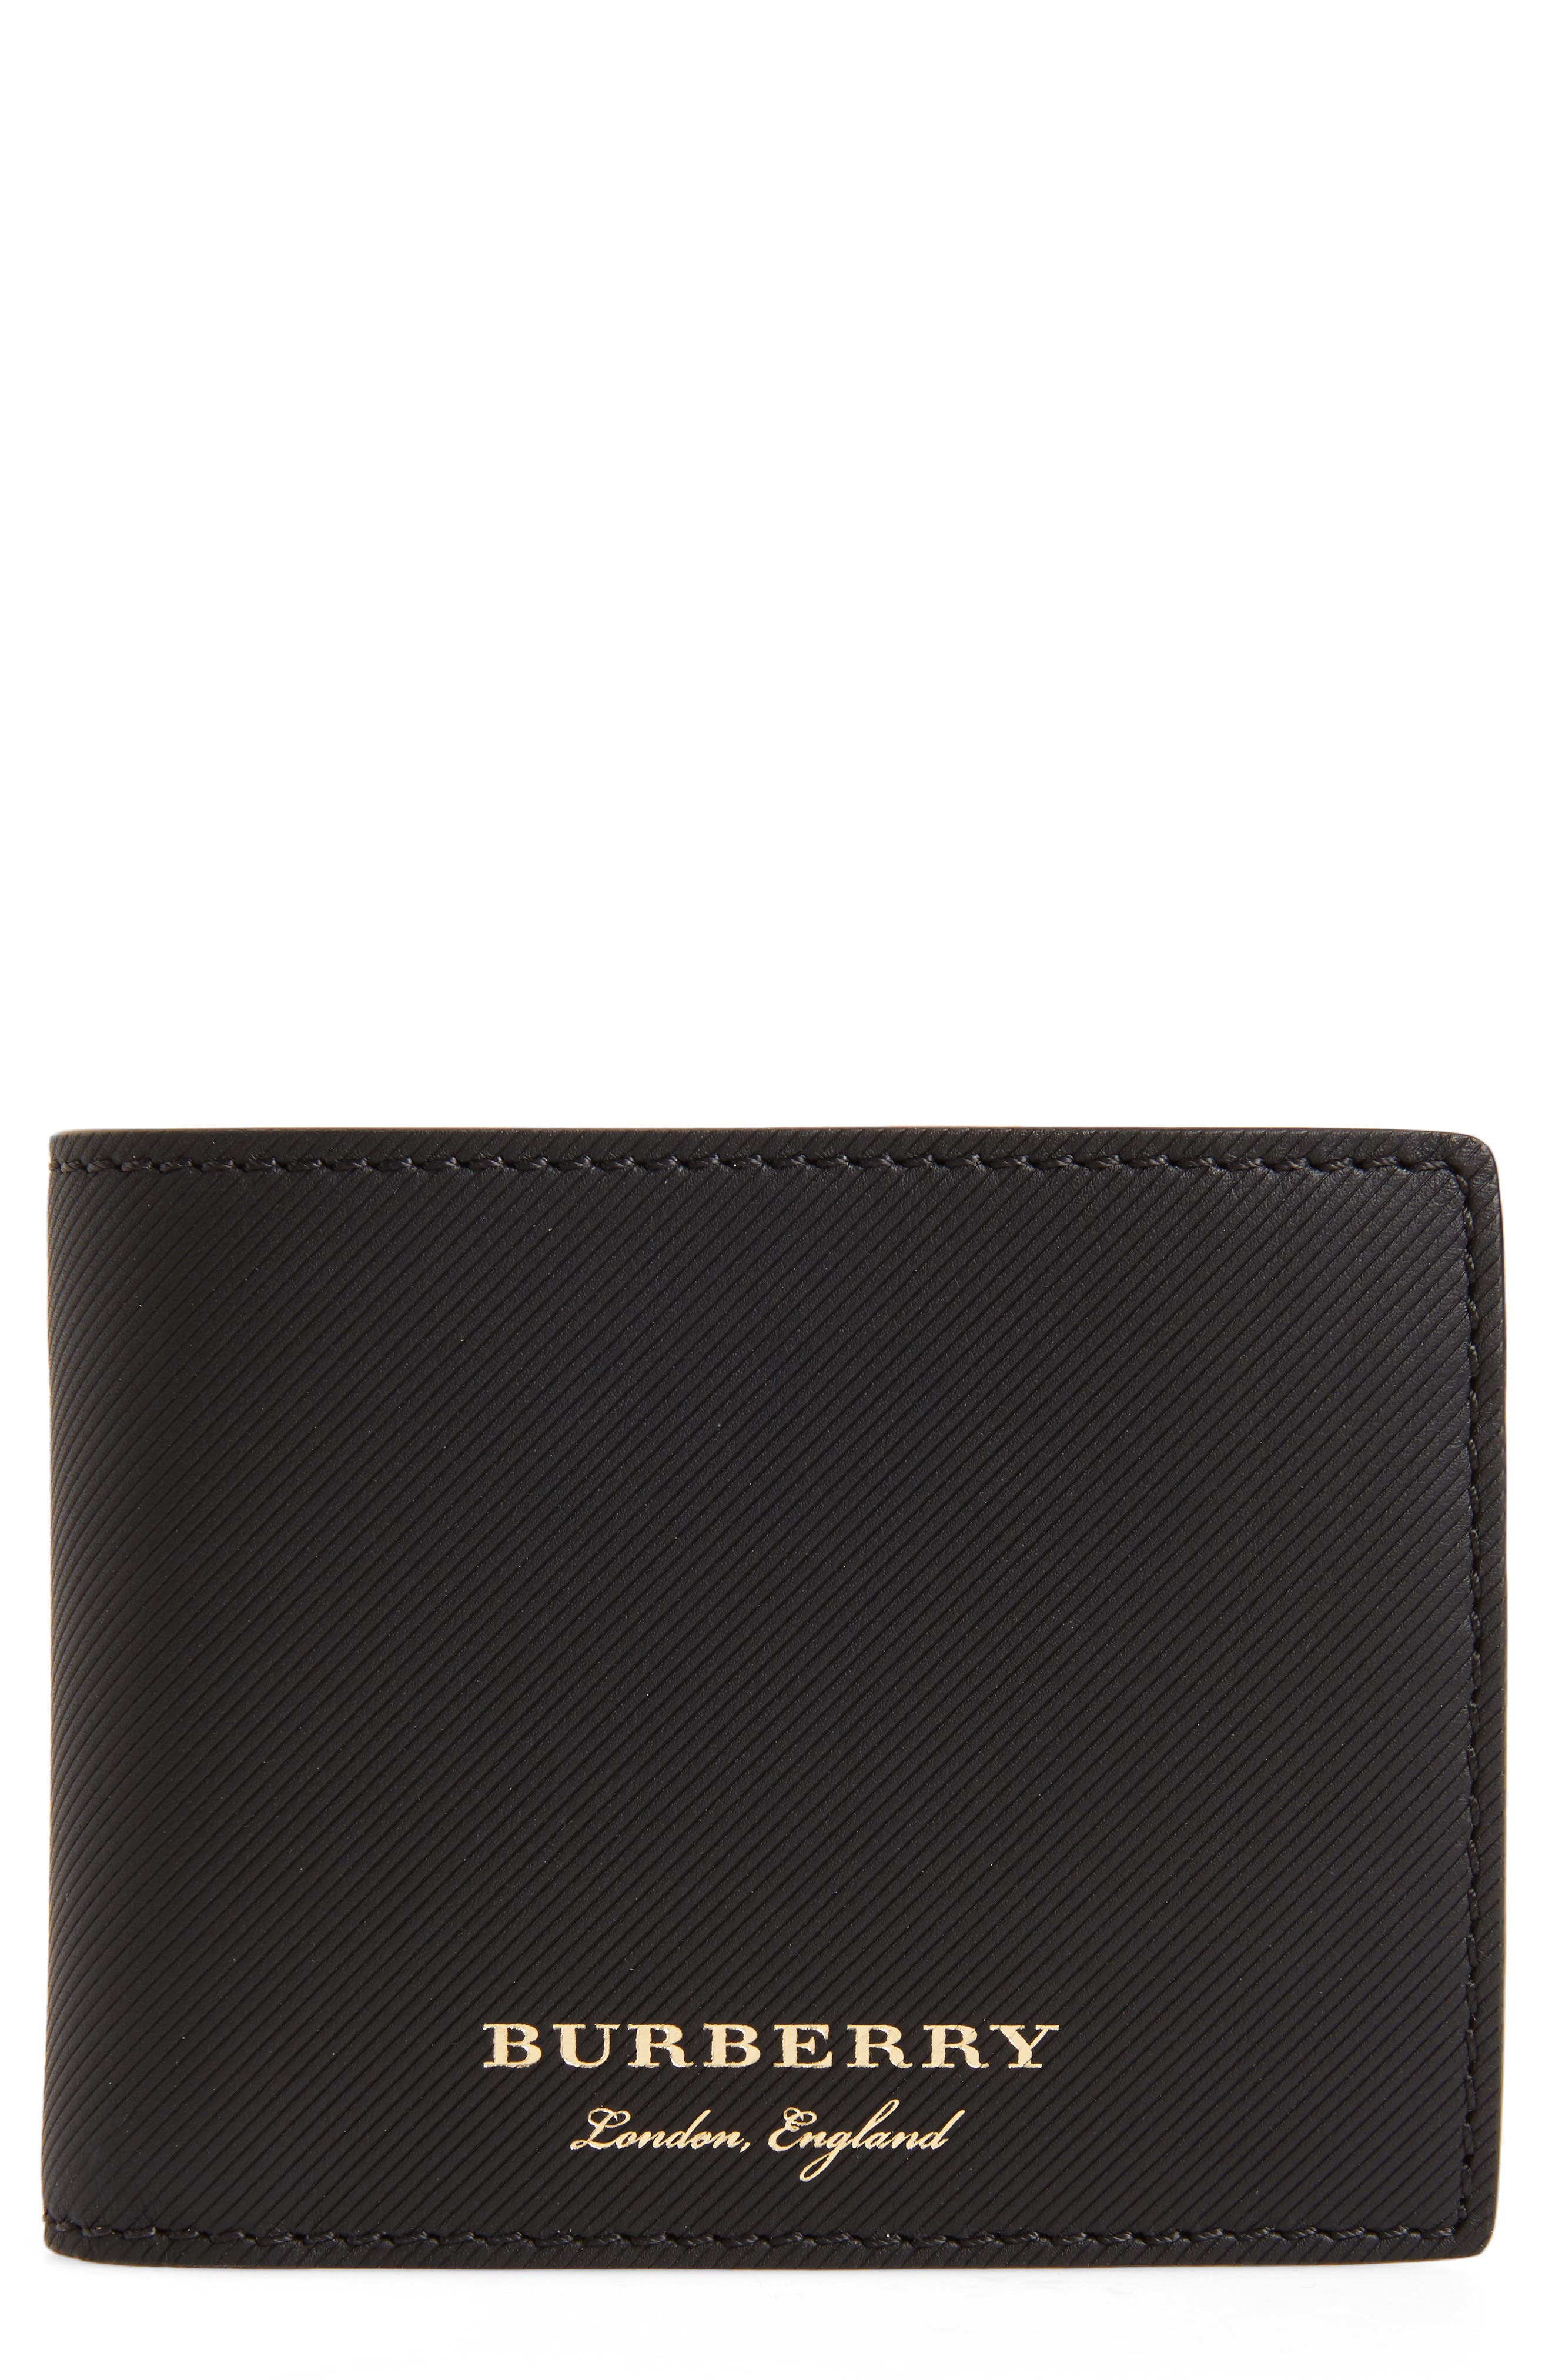 Leather Bifold Wallet,                         Main,                         color, BLACK